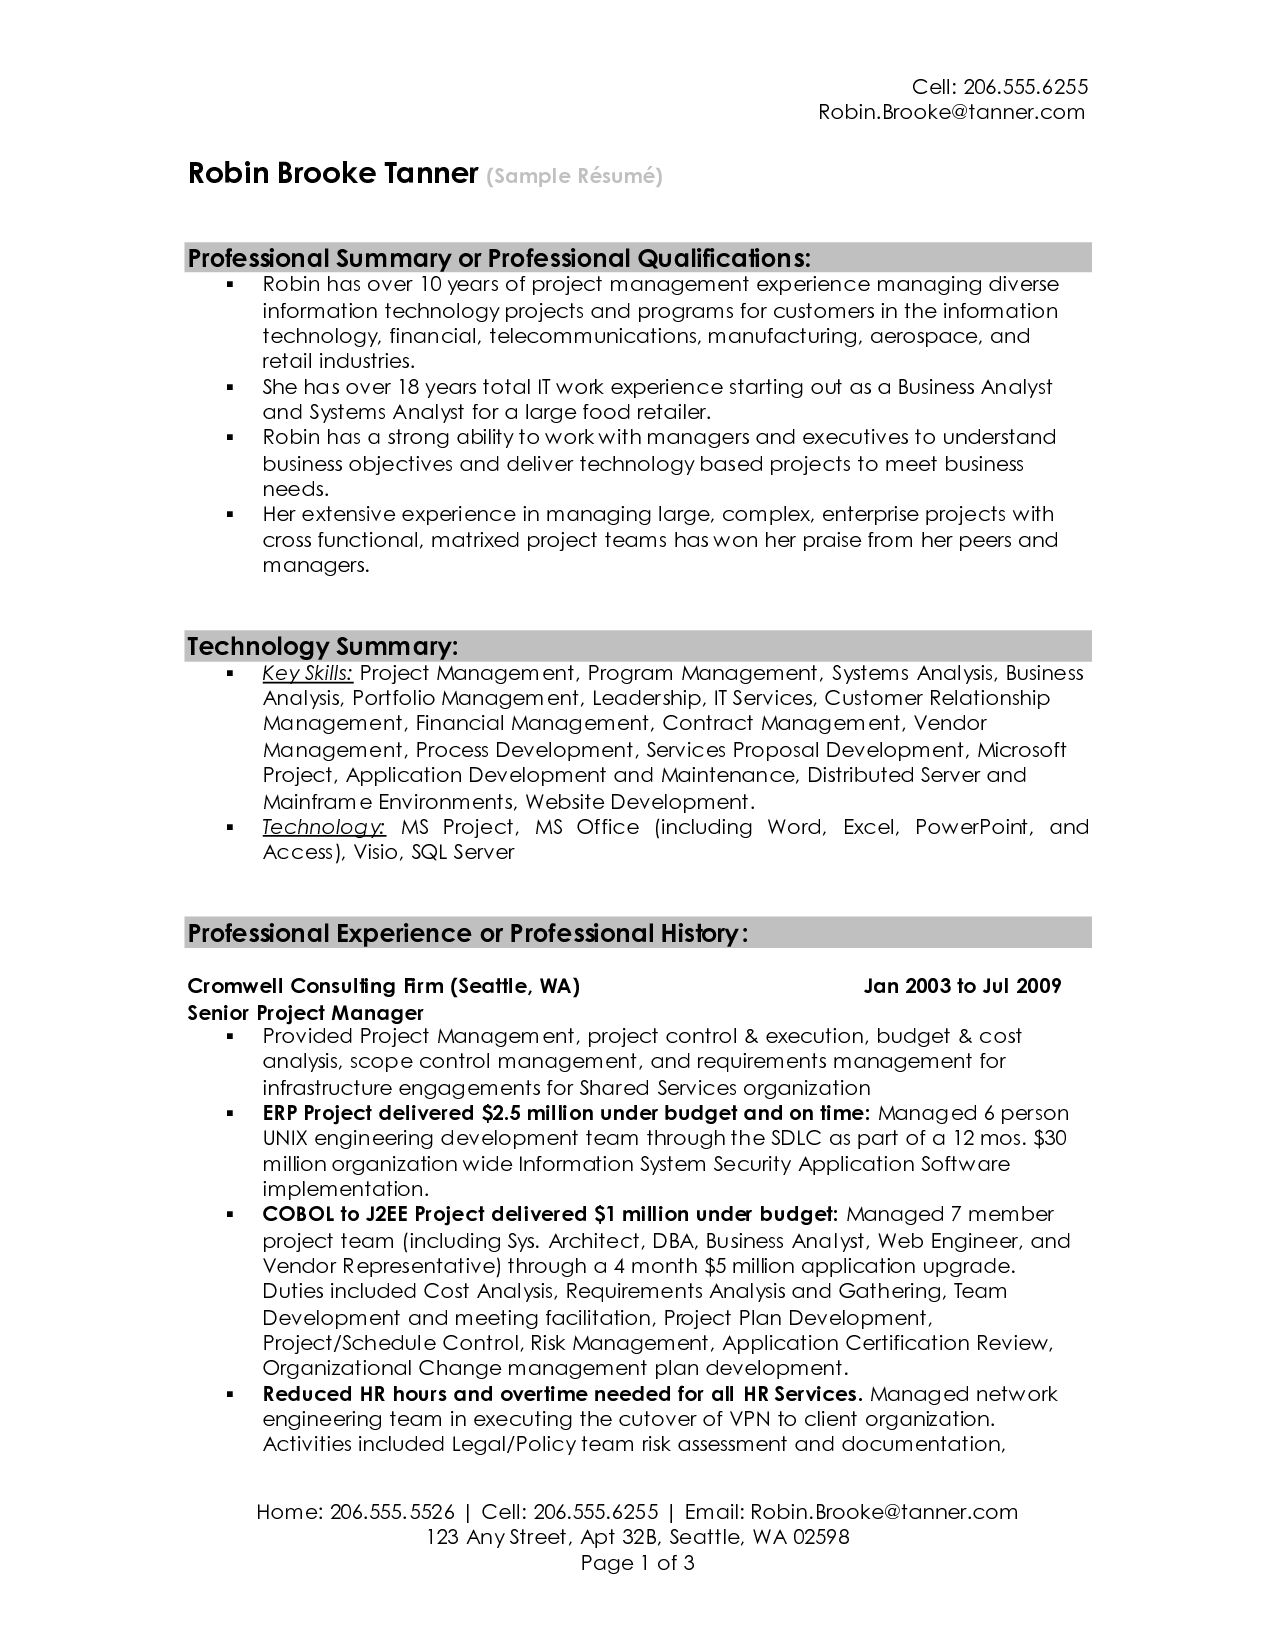 how to write professional summary in resumes - How To Write A Professional Summary For Resume